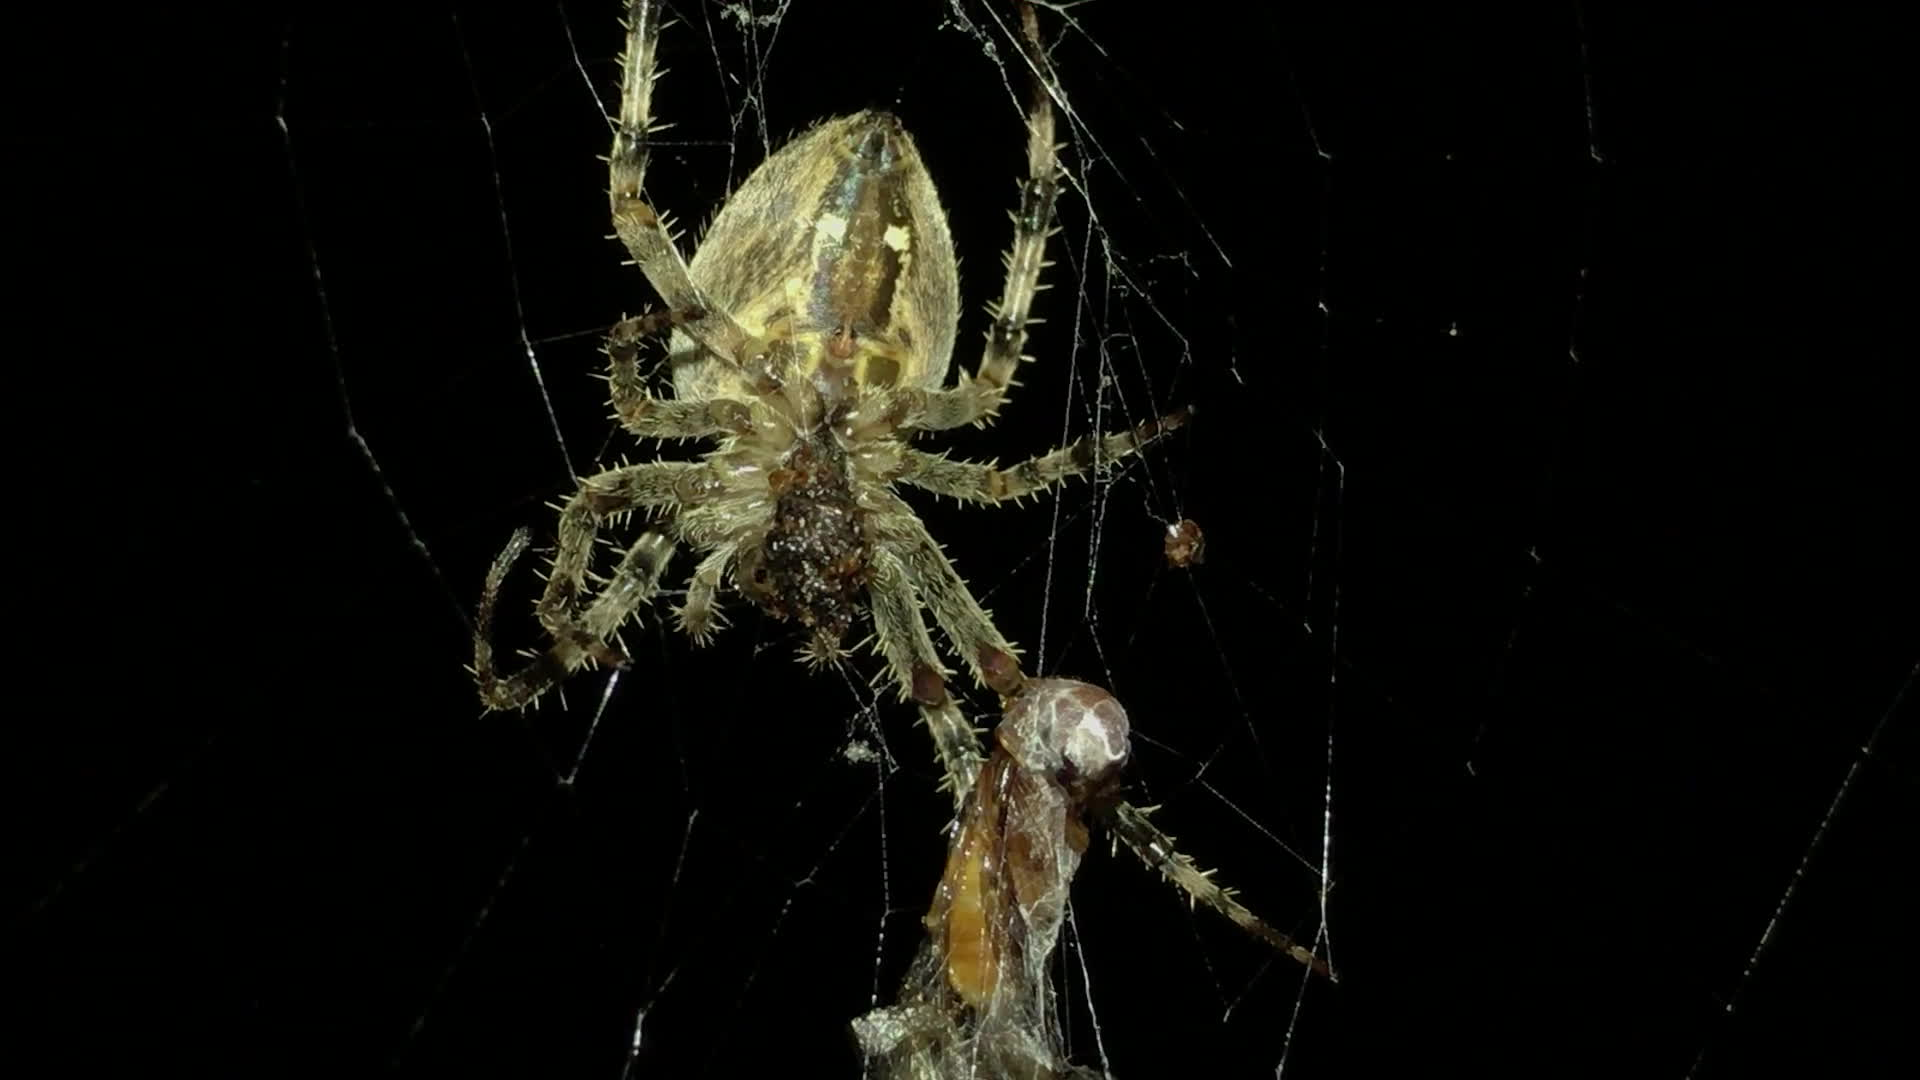 natureismetal, orb weaver, Hungry hungry spider GIFs